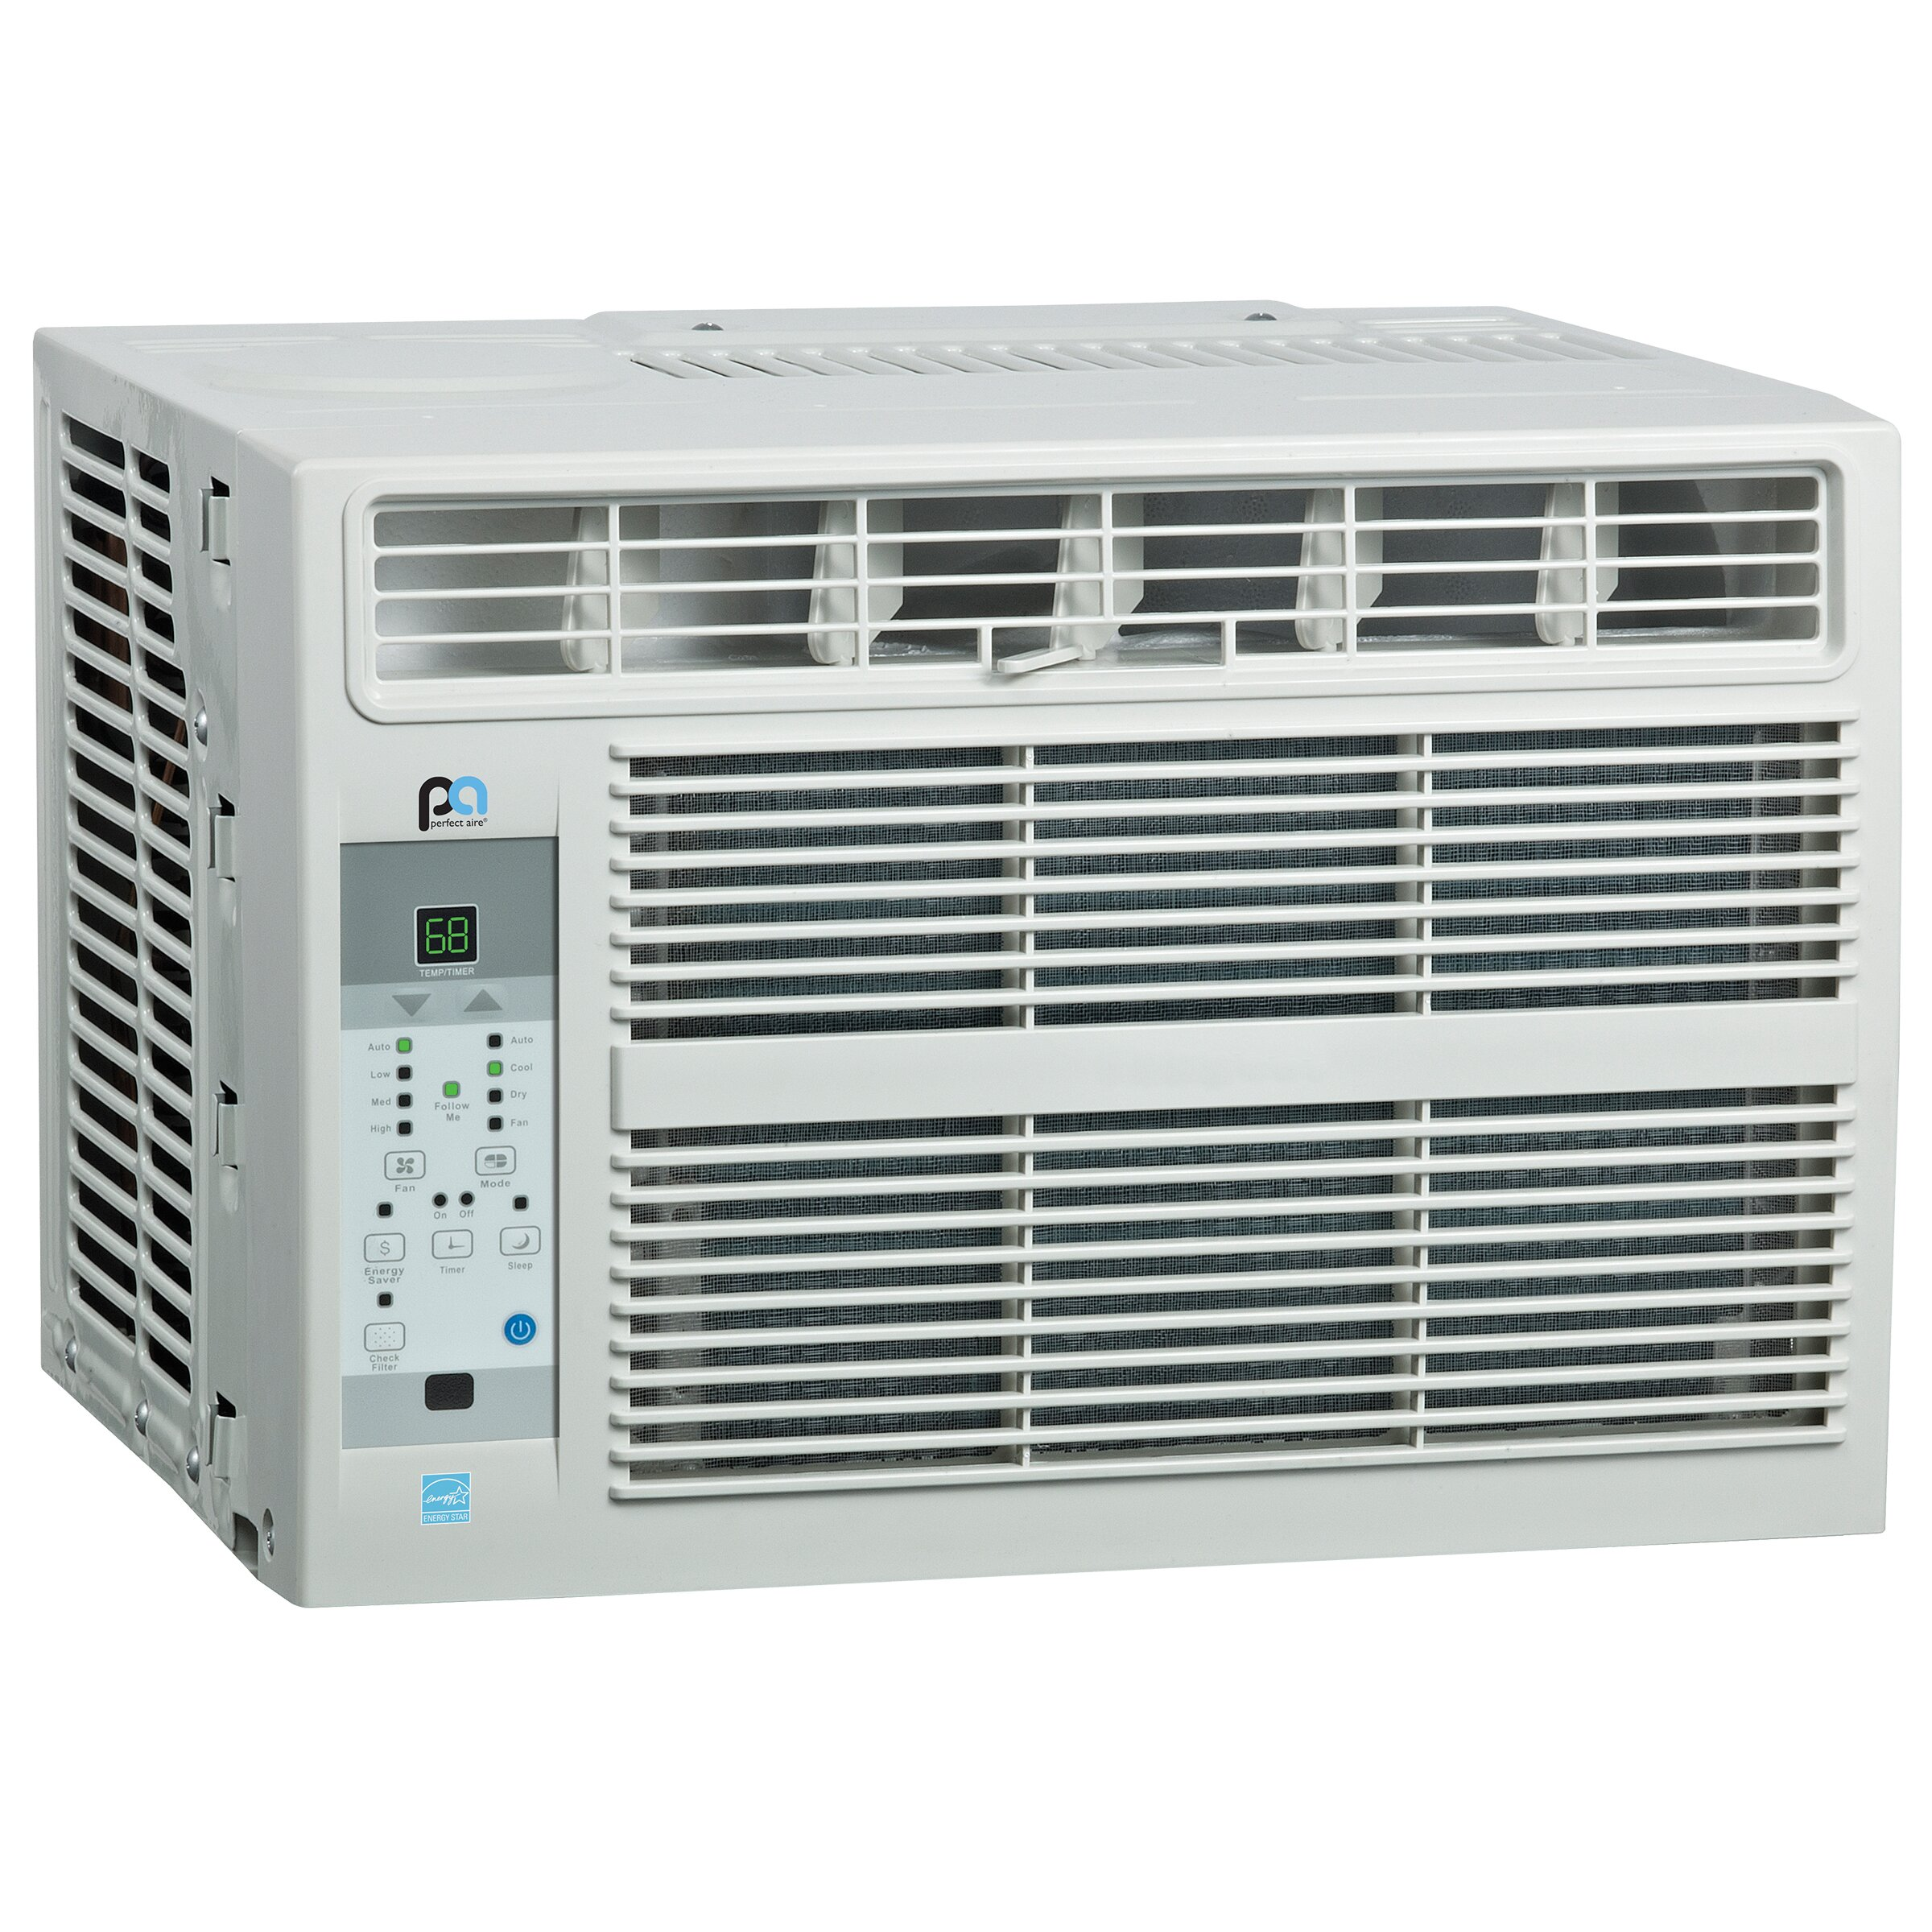 5000 btu energy star window air conditioner with remote. Black Bedroom Furniture Sets. Home Design Ideas